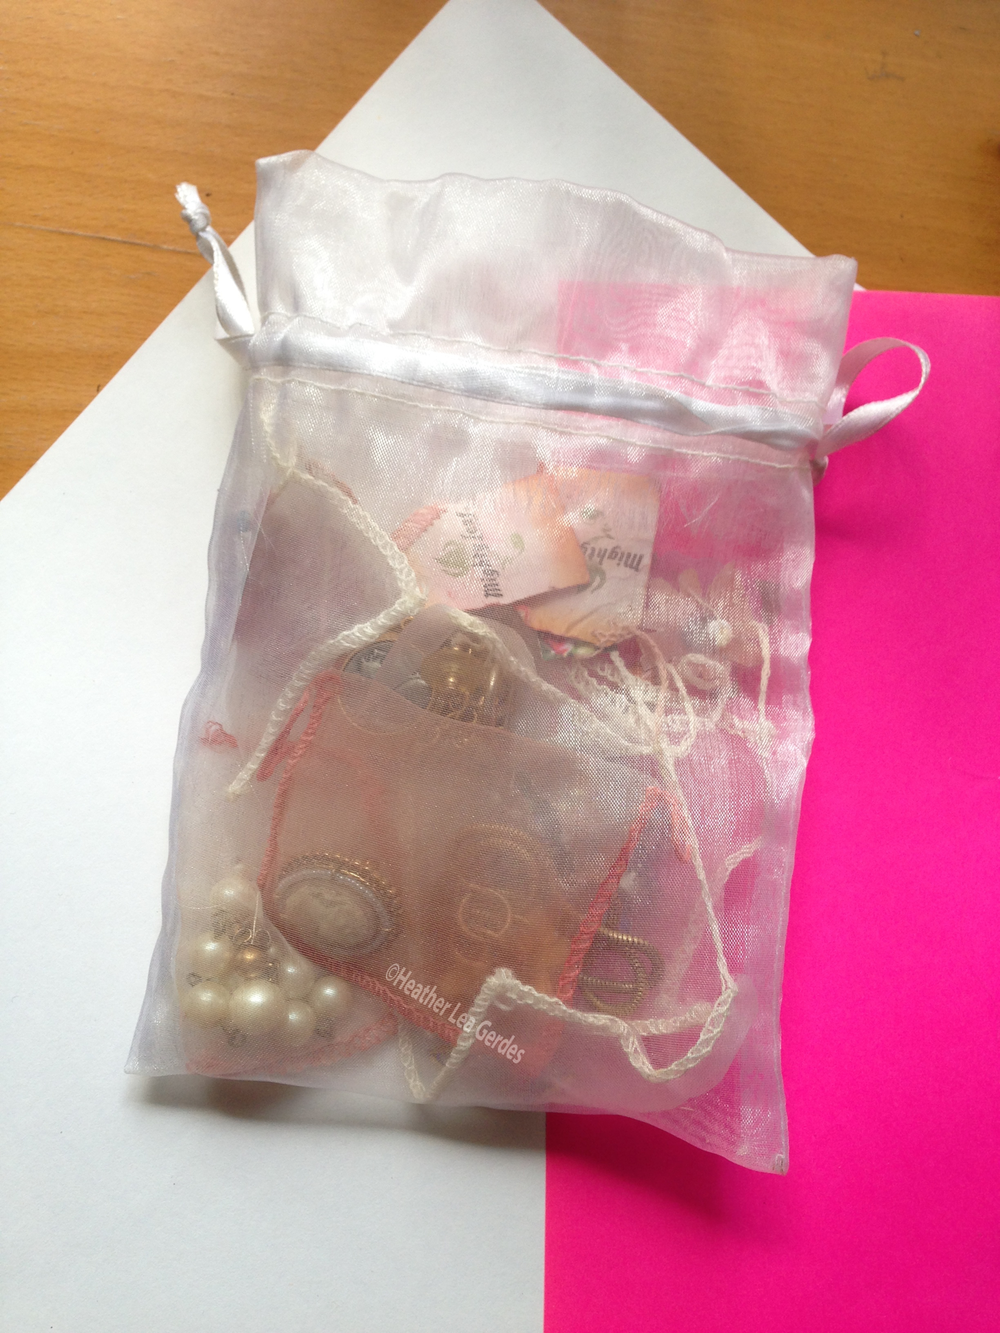 Travel is made easy with several silk tea bag jewelry pouches in a larger pouch.